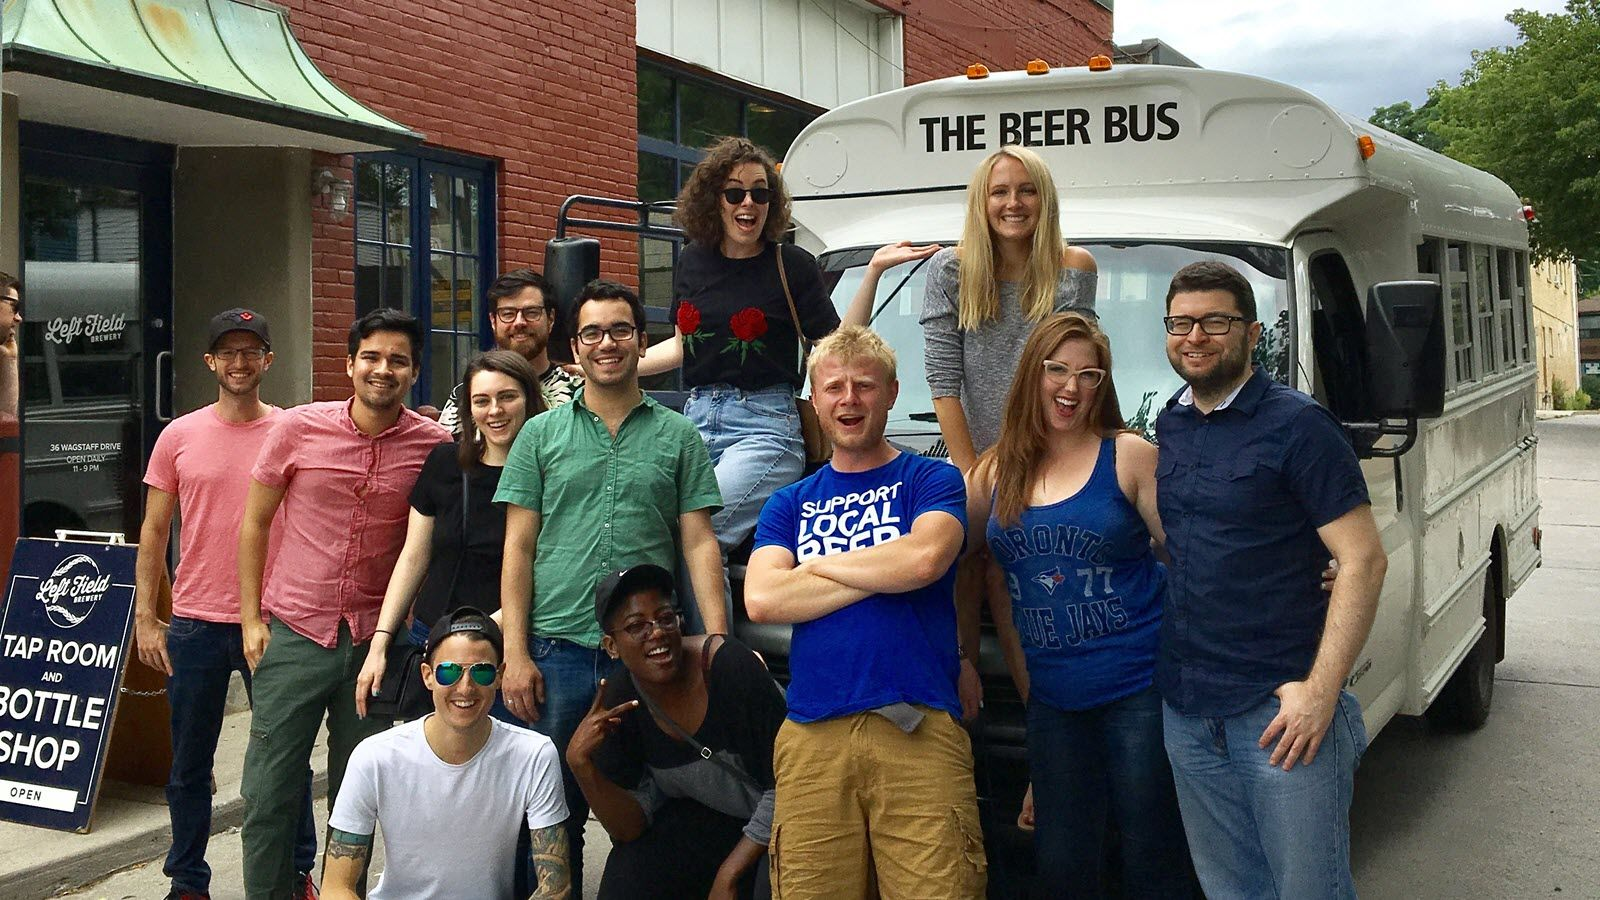 Things to do in Toronto - The Beer Bus